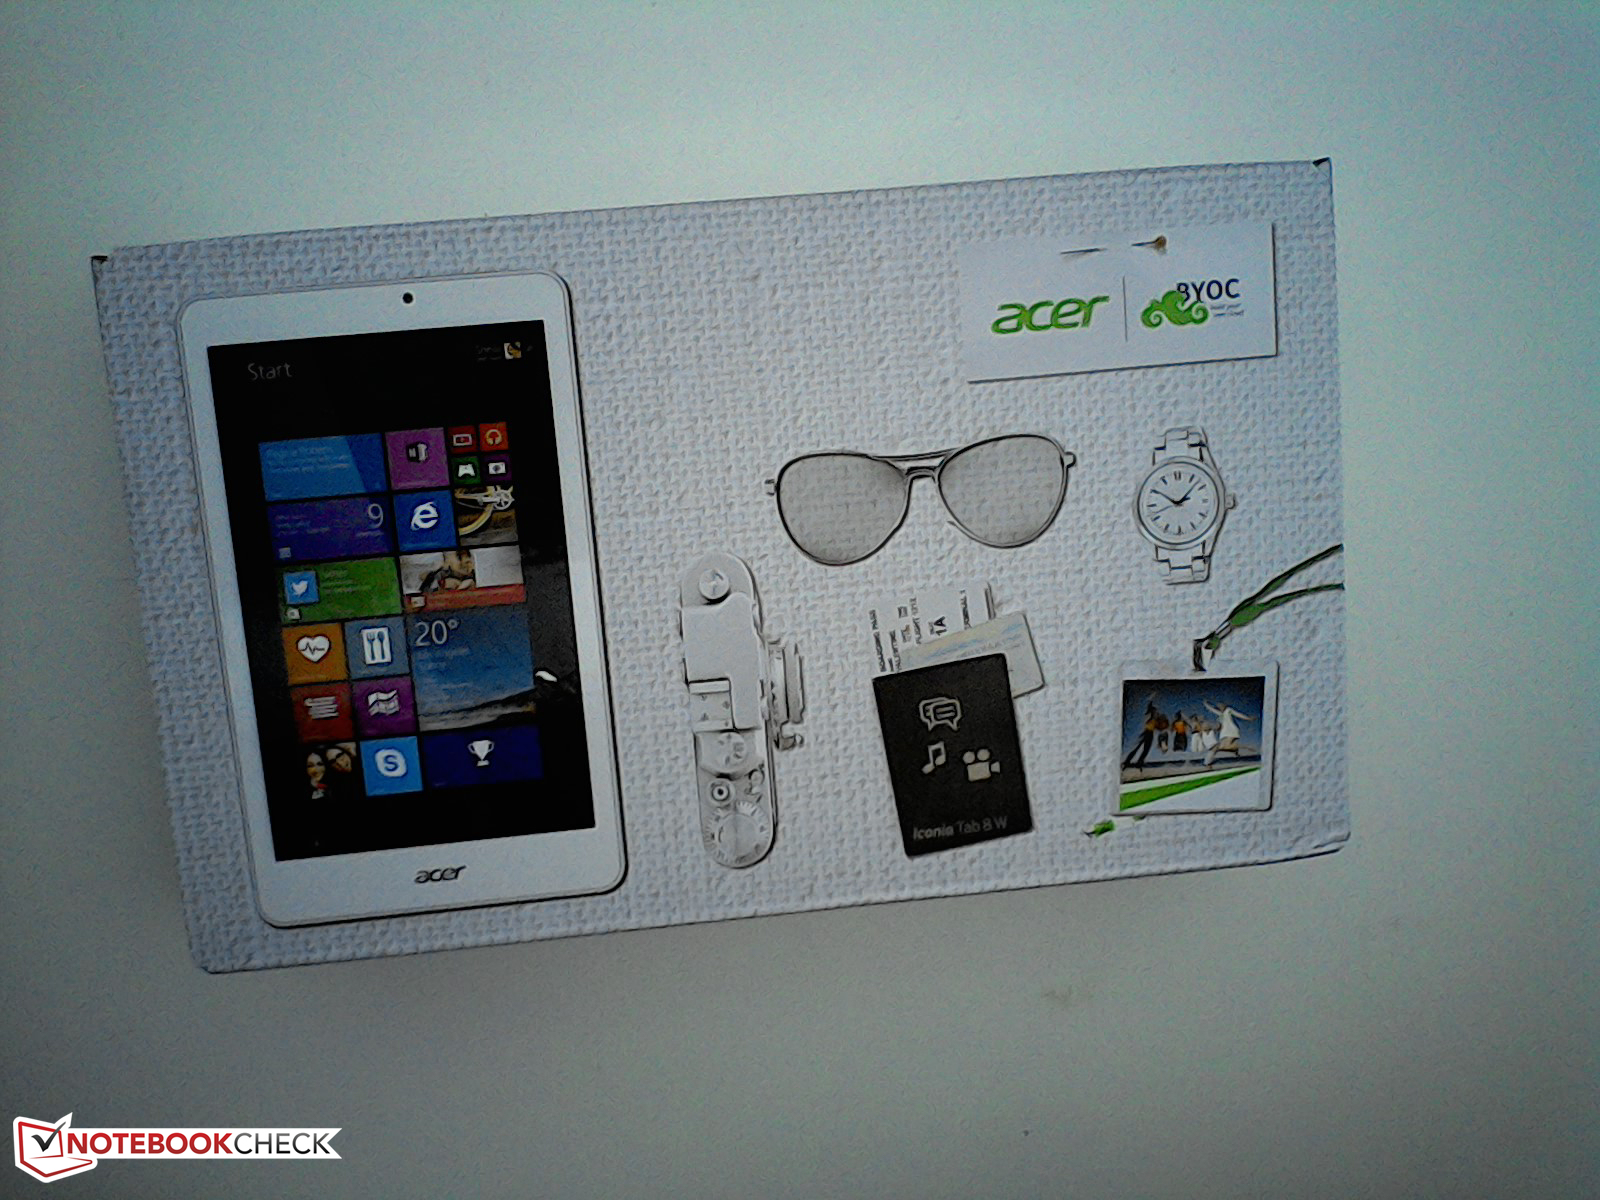 Acer iconia tab 8 a1-840fhd-10g2 - 62c05